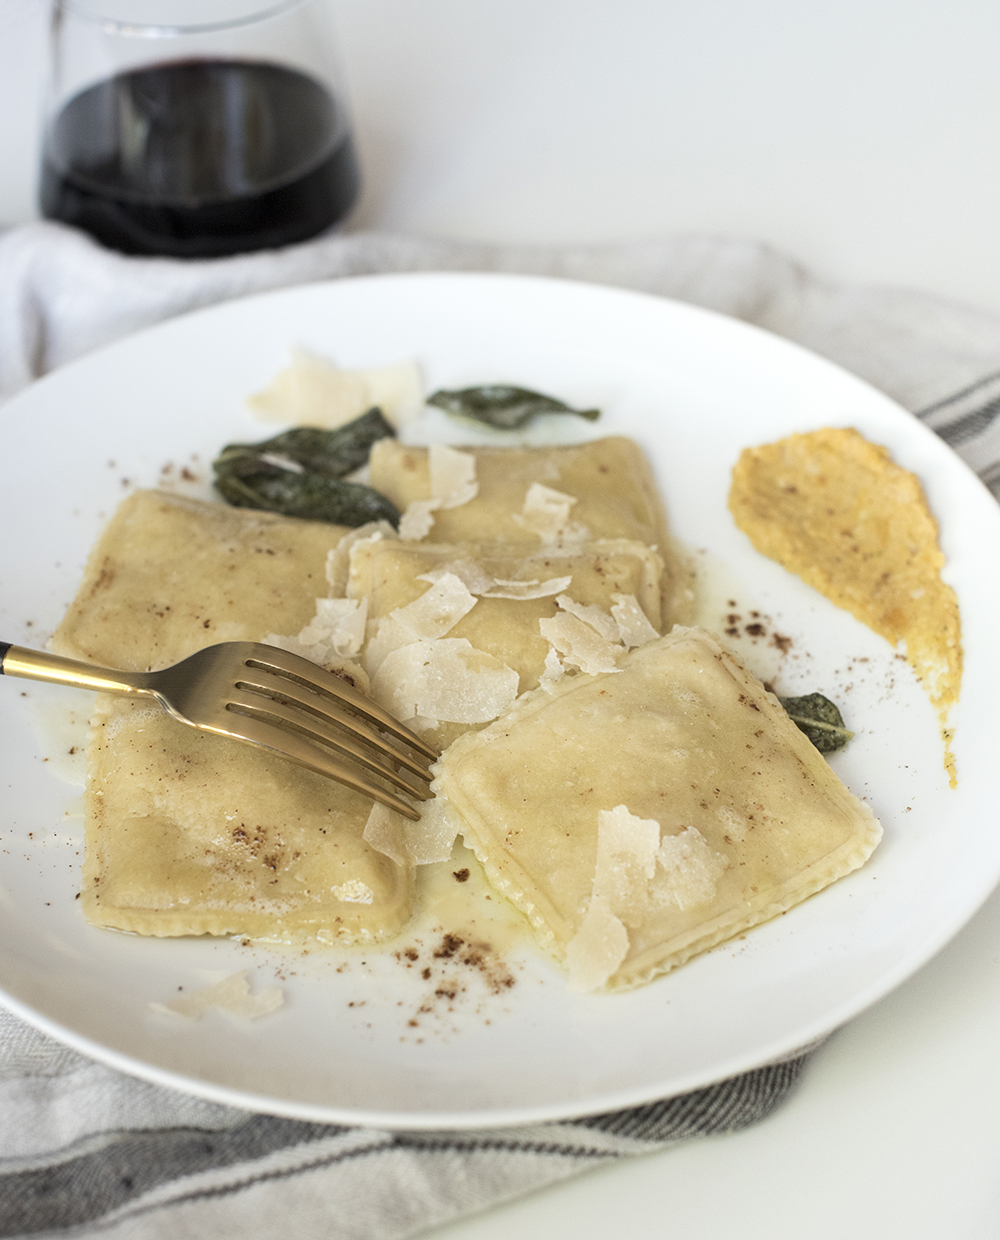 Butternut Squash Ravioli Recipe + My New Cookware - roomfortuesday.com